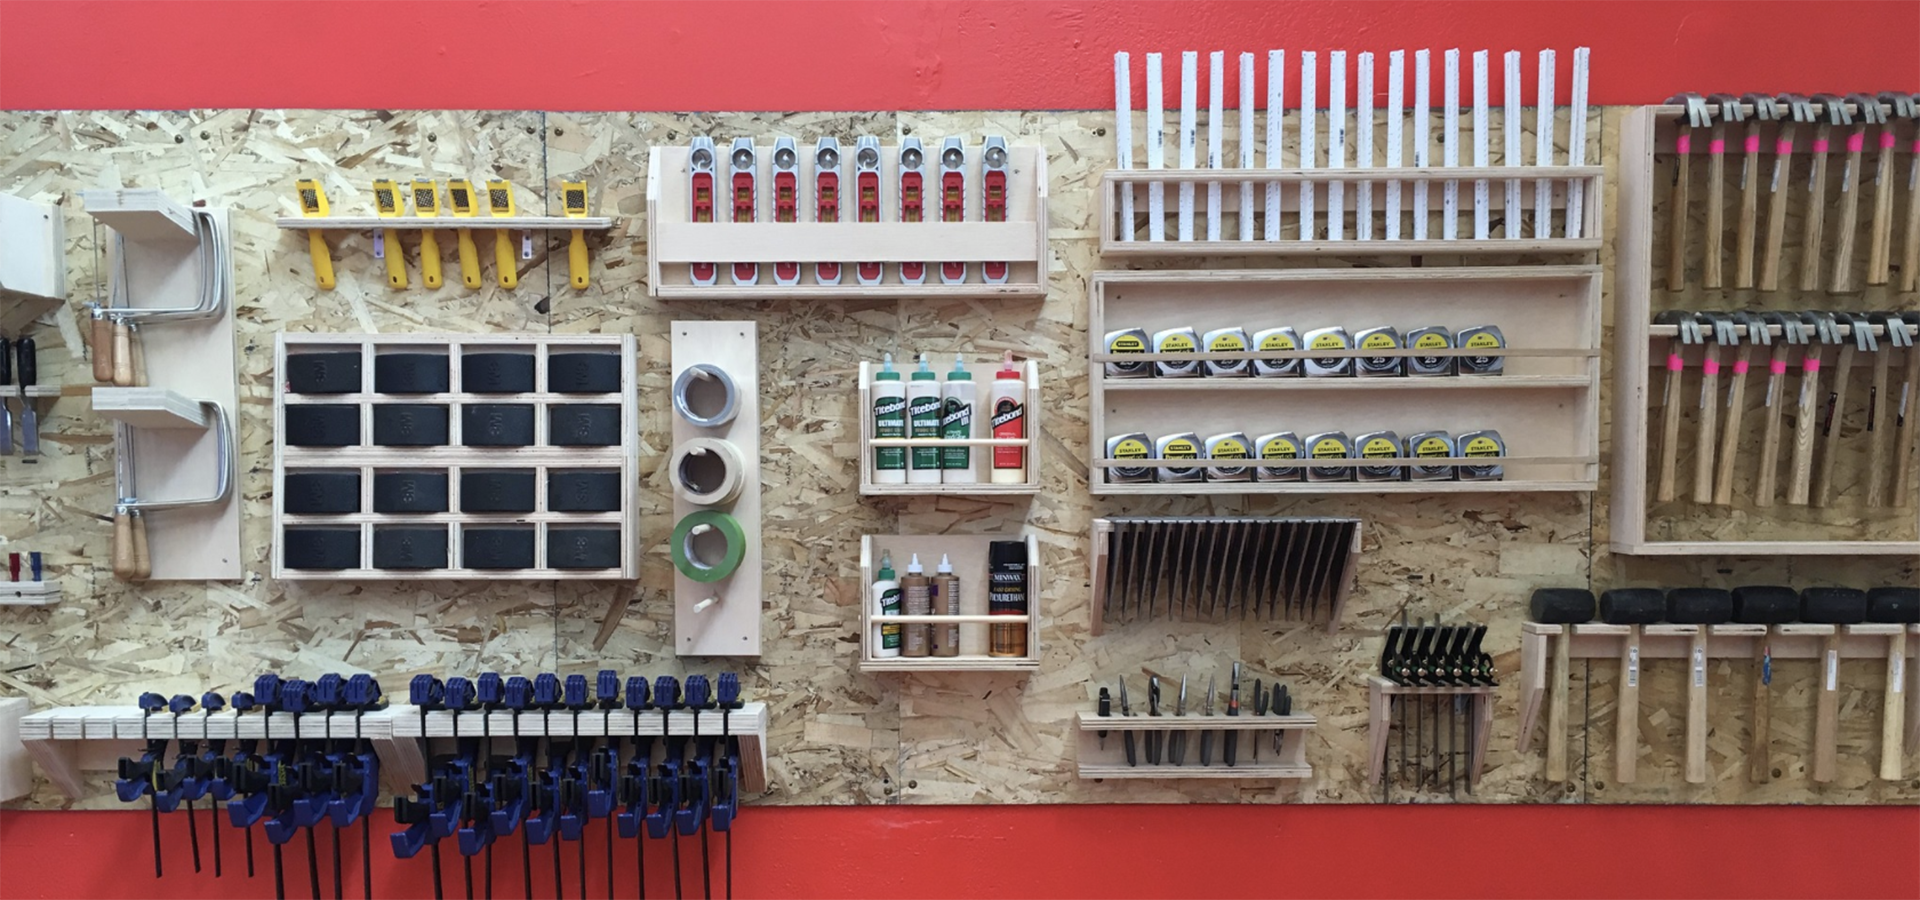 wall of tools organized by size and material